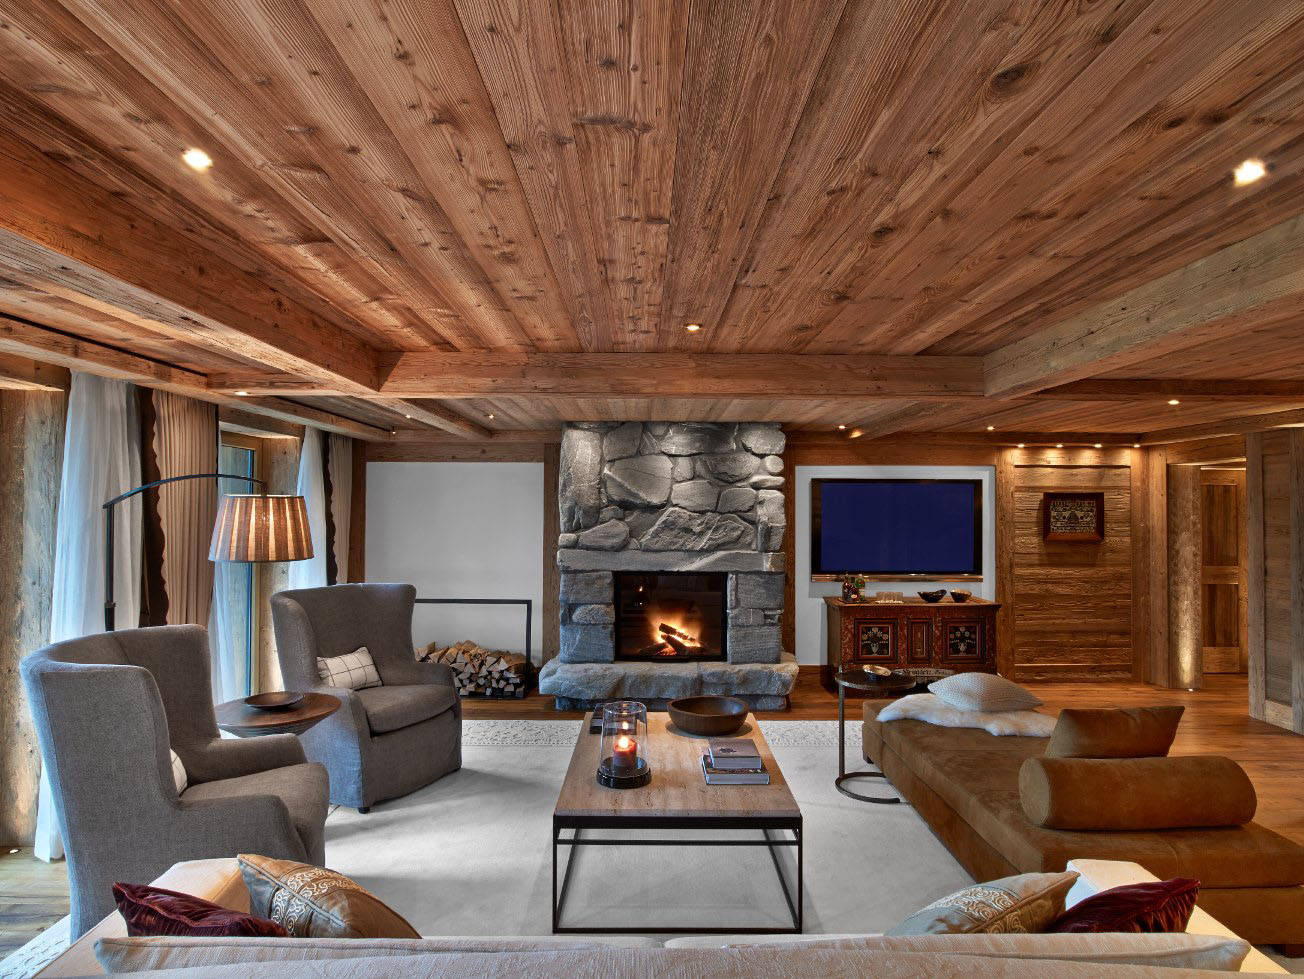 Swiss alpine luxury at the alpina gstaad hotel for Alpine home designs